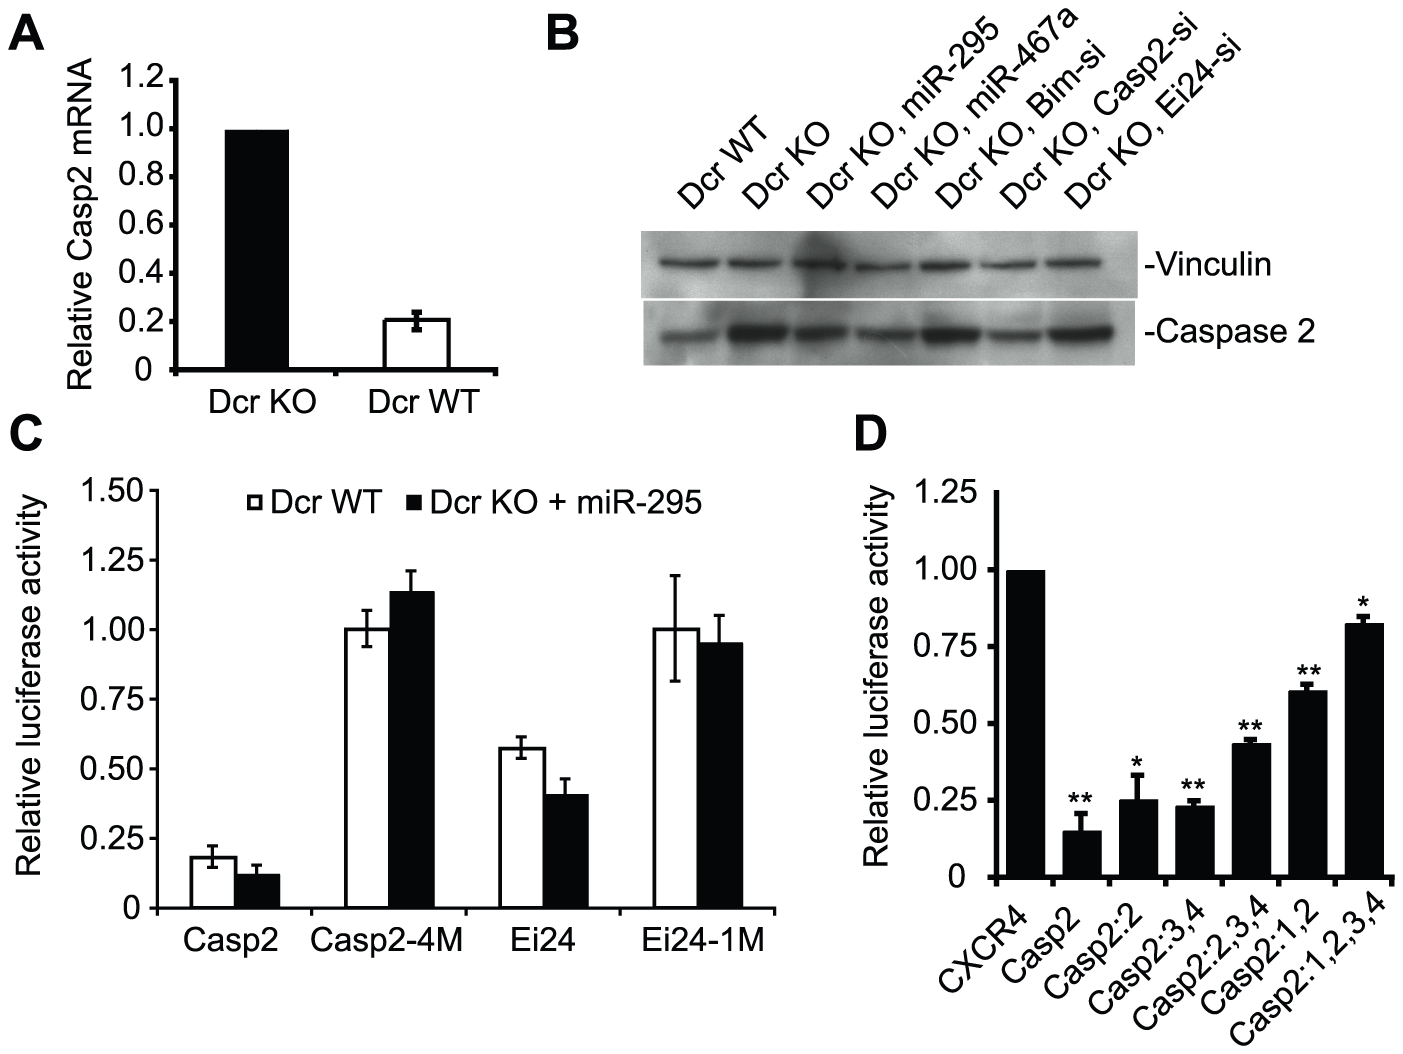 The pro-apoptotic genes Caspase 2 (Casp2) and Ei24 are direct targets of the mir-295 cluster.